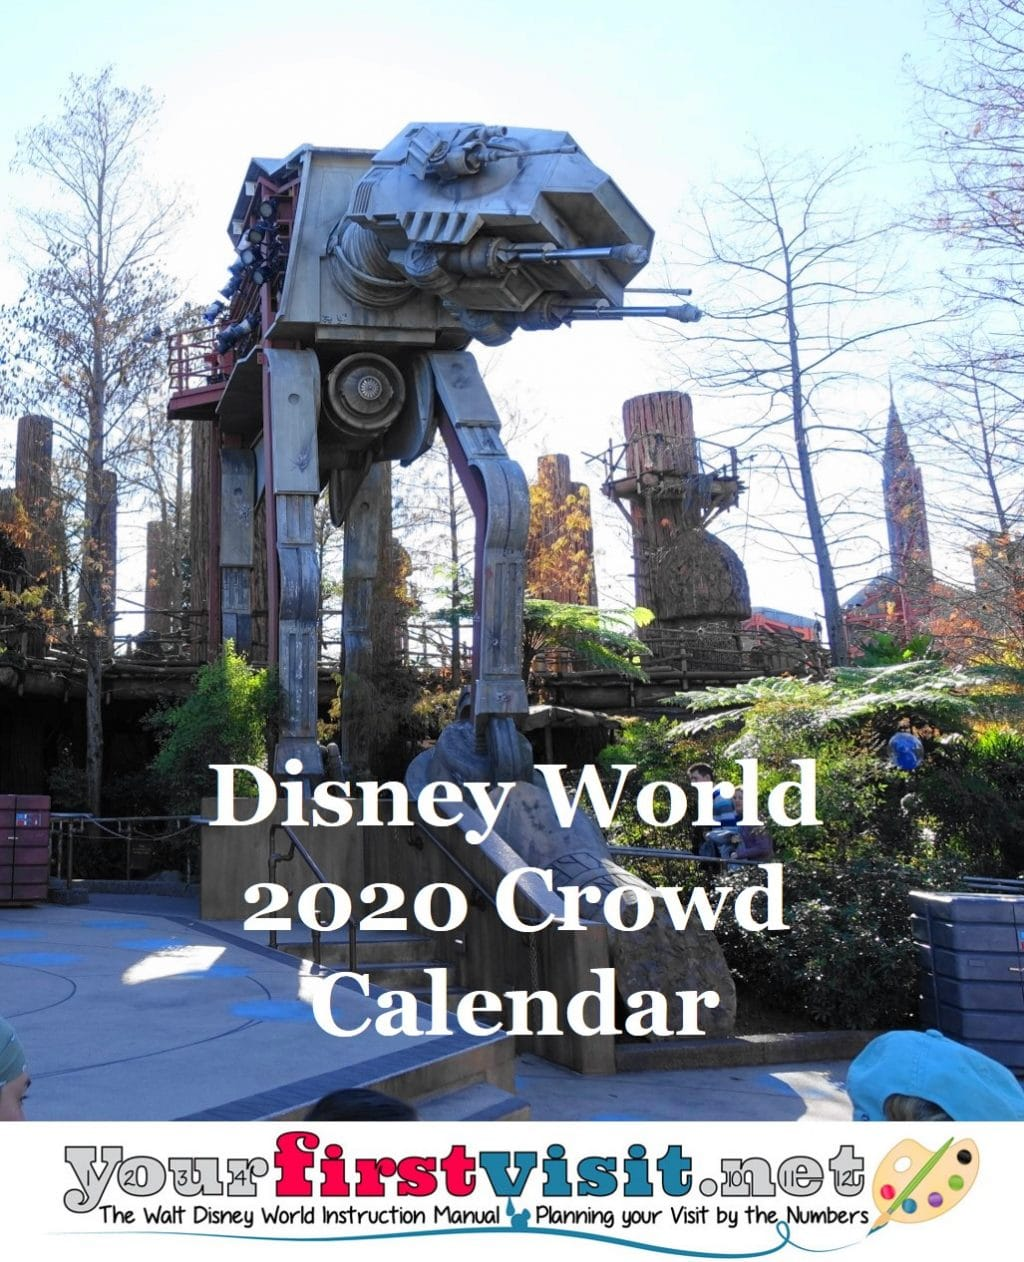 Disney 2020 Calendar Disney World Crowds in 2020   yourfirstvisit.net